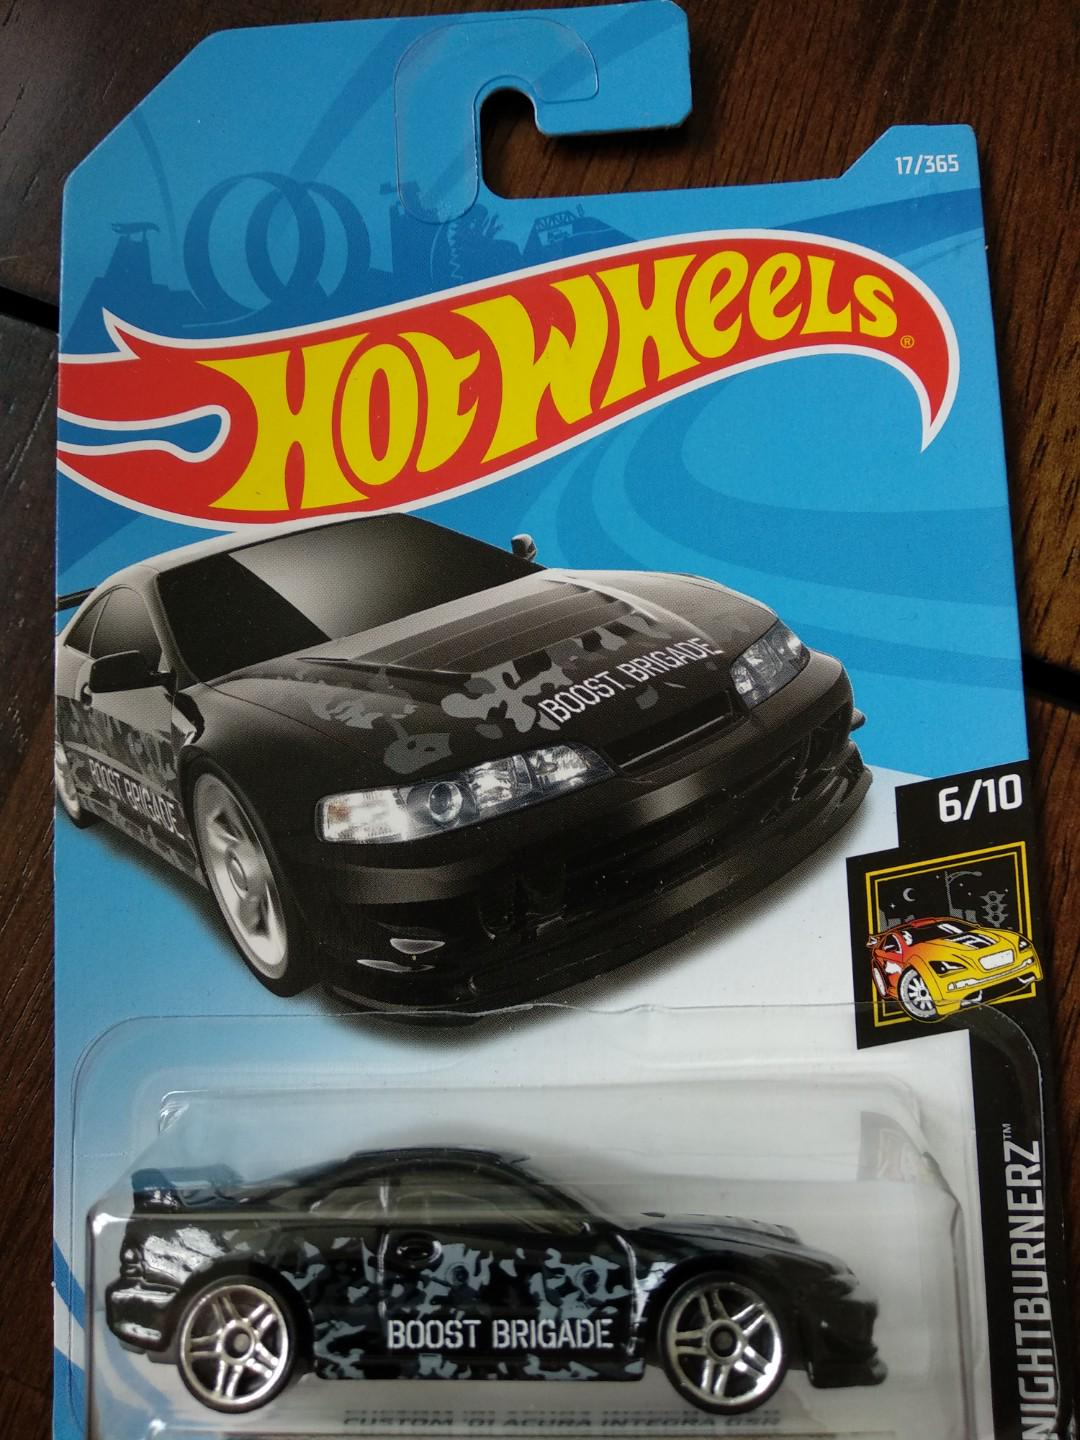 Hotwheels Honda Acura Integra Gsr Black Toys Games Others On Carousell